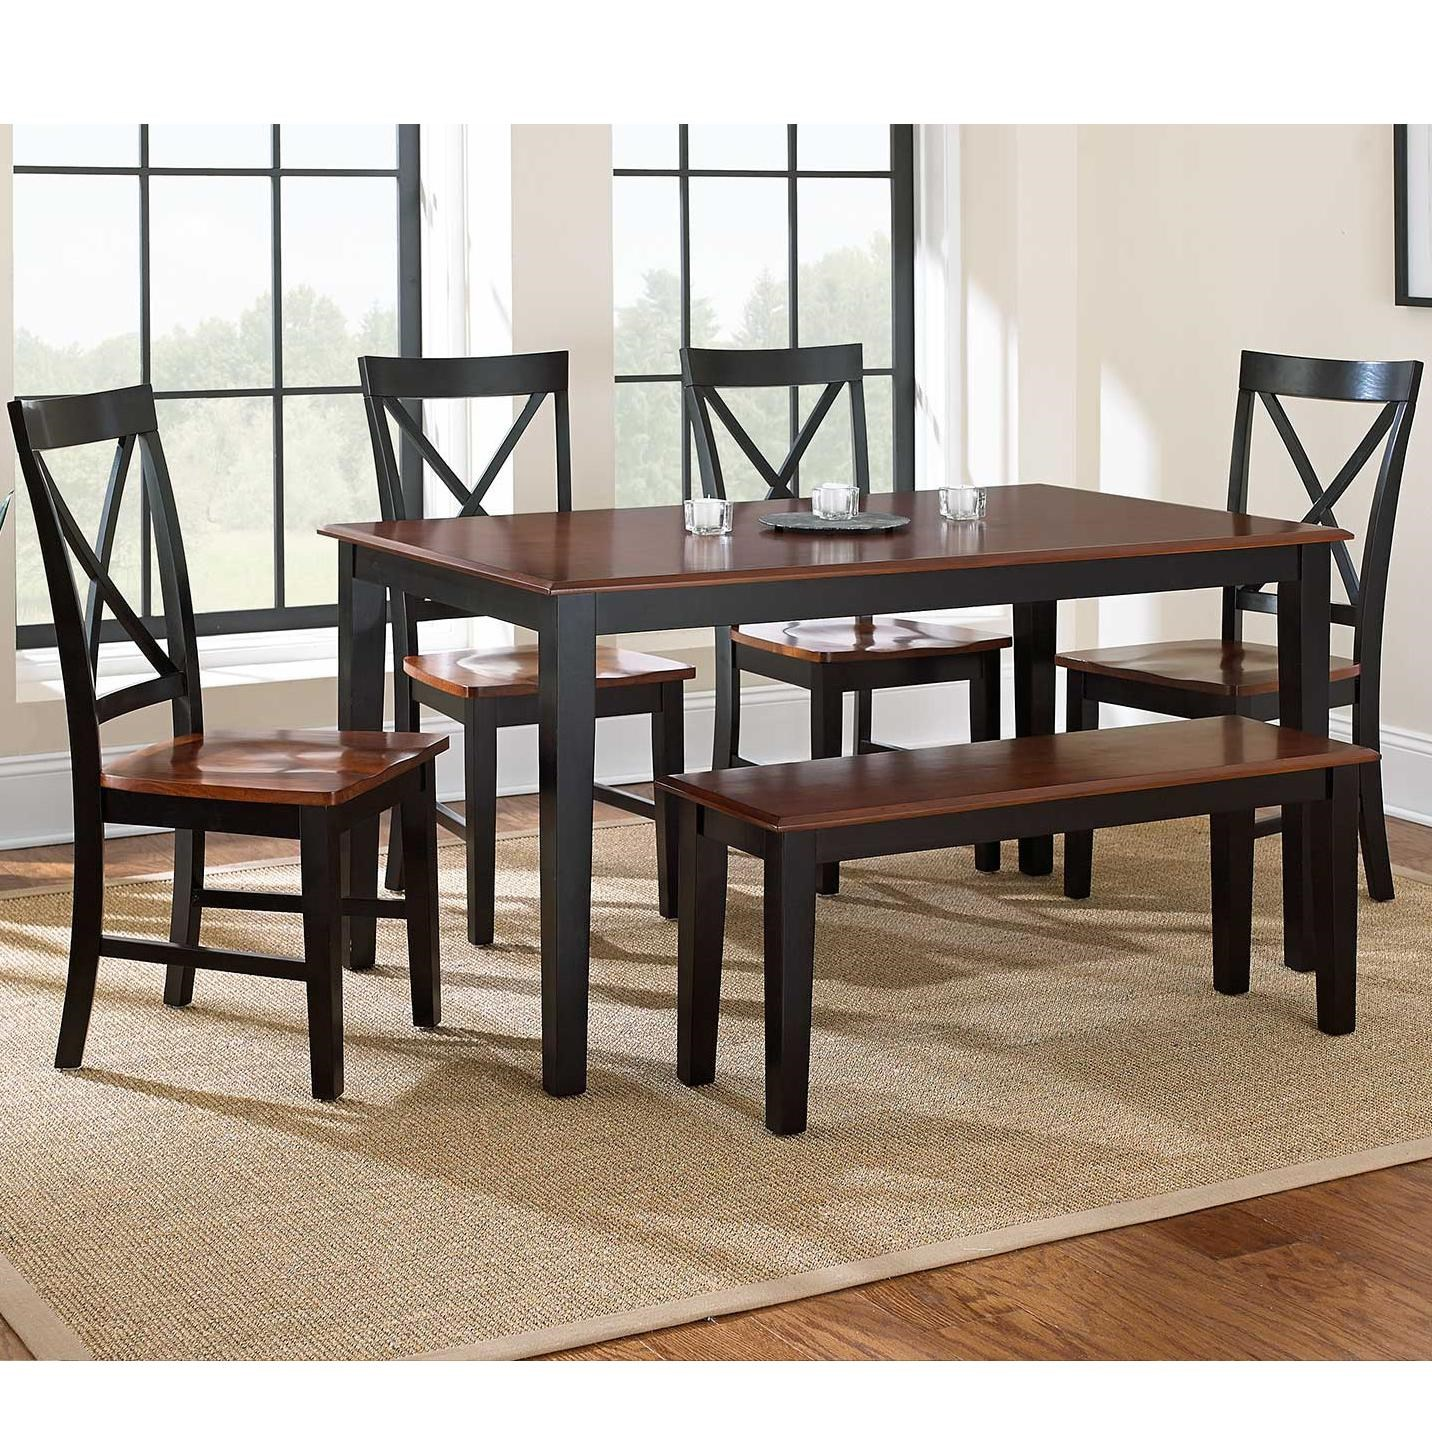 Steve Silver Kingston 6 Piece Casual Dining Table